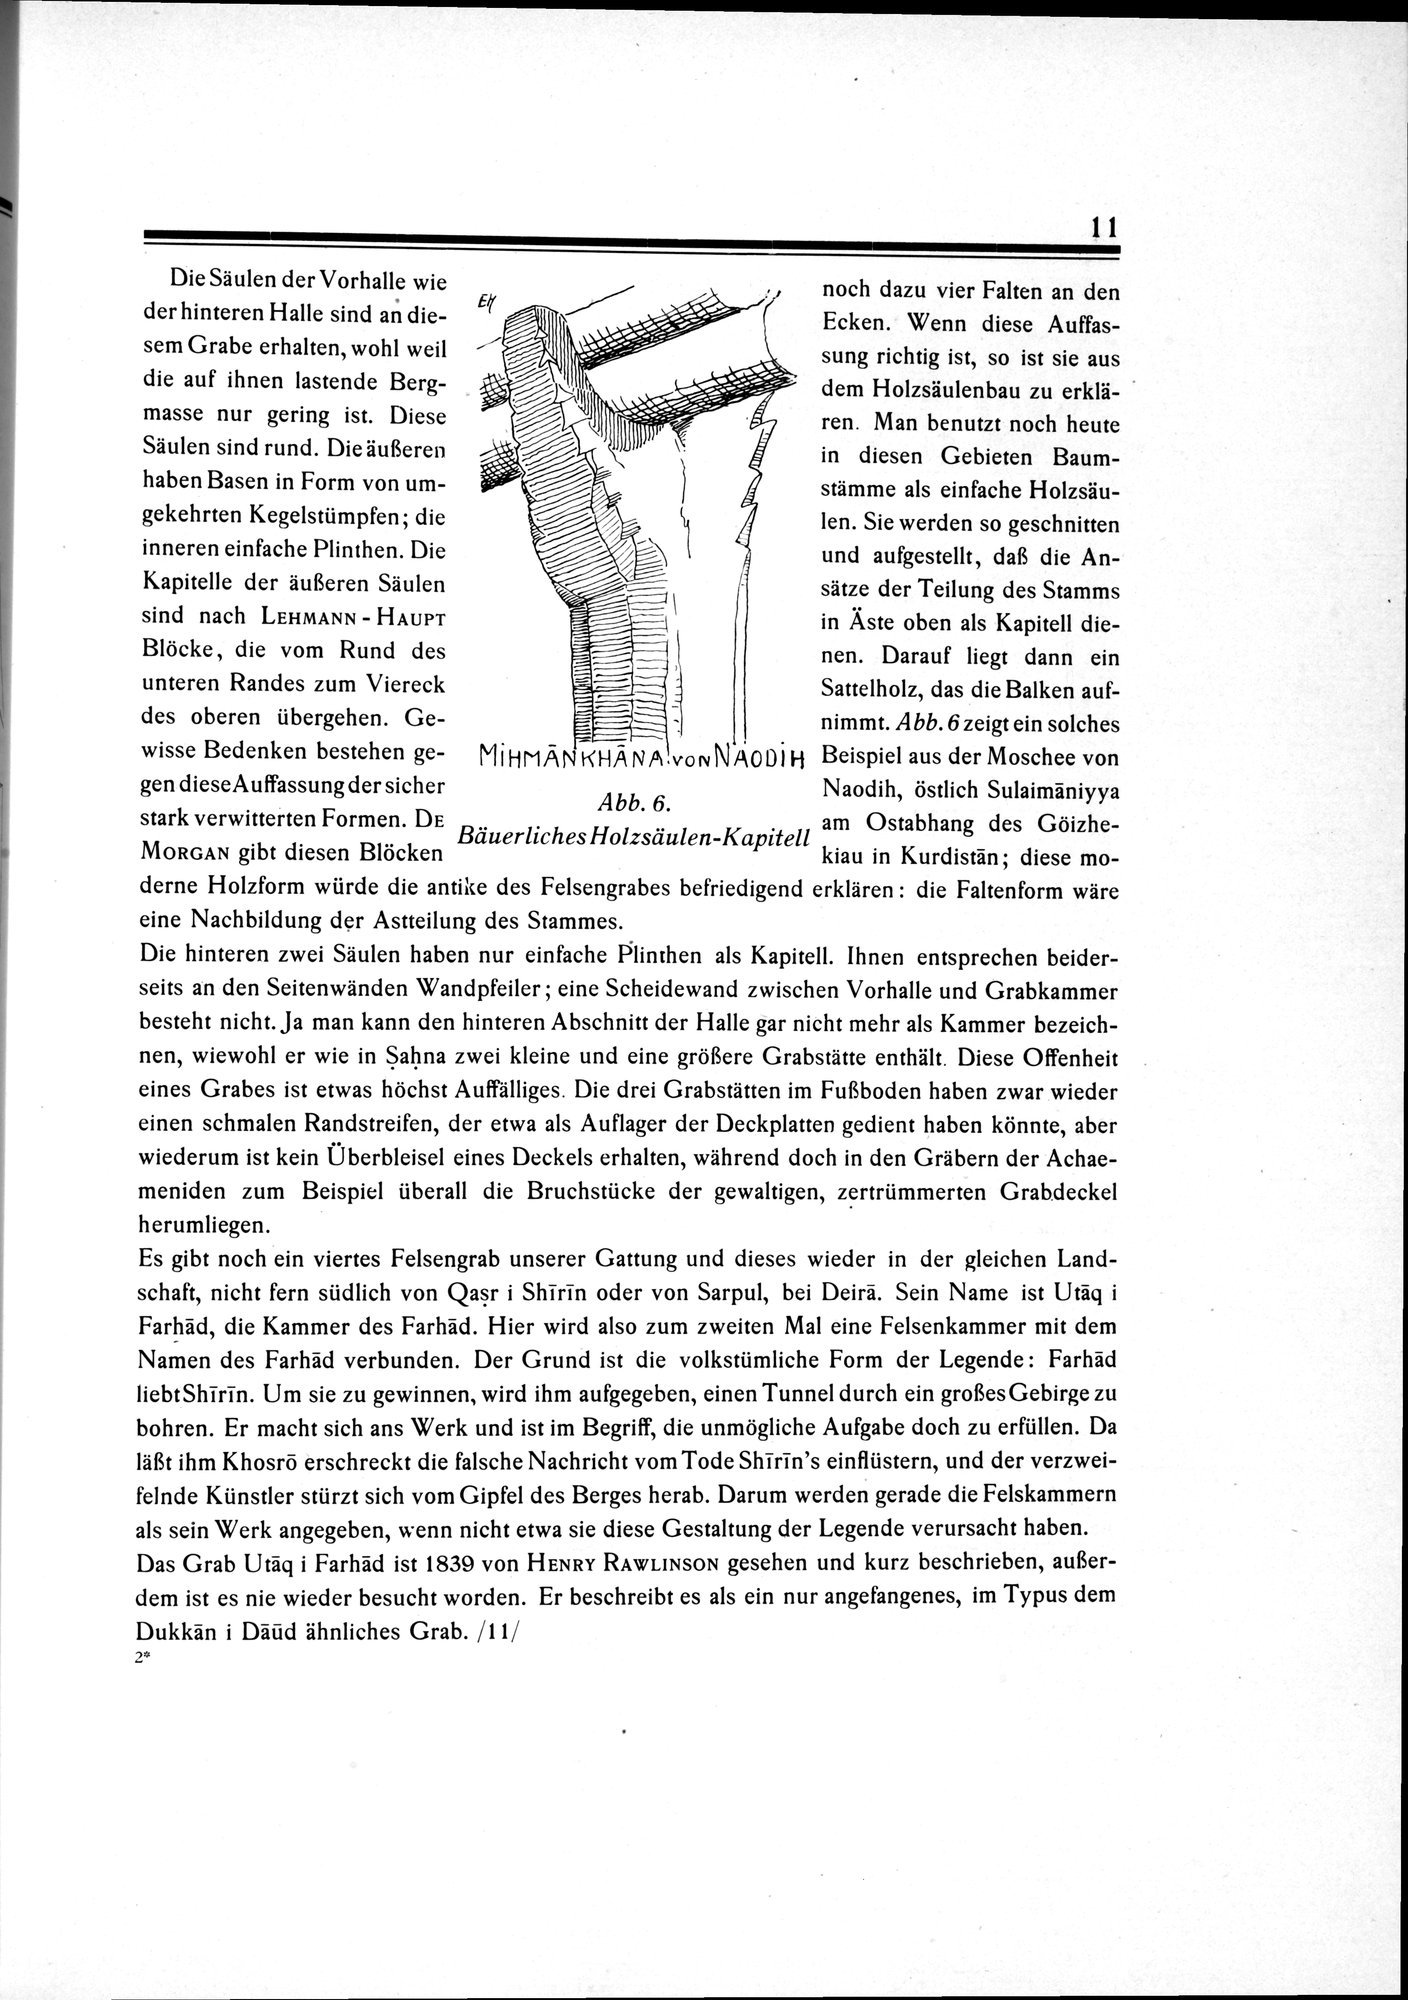 Am Tor von Asien : vol.1 / Page 29 (Grayscale High Resolution Image)